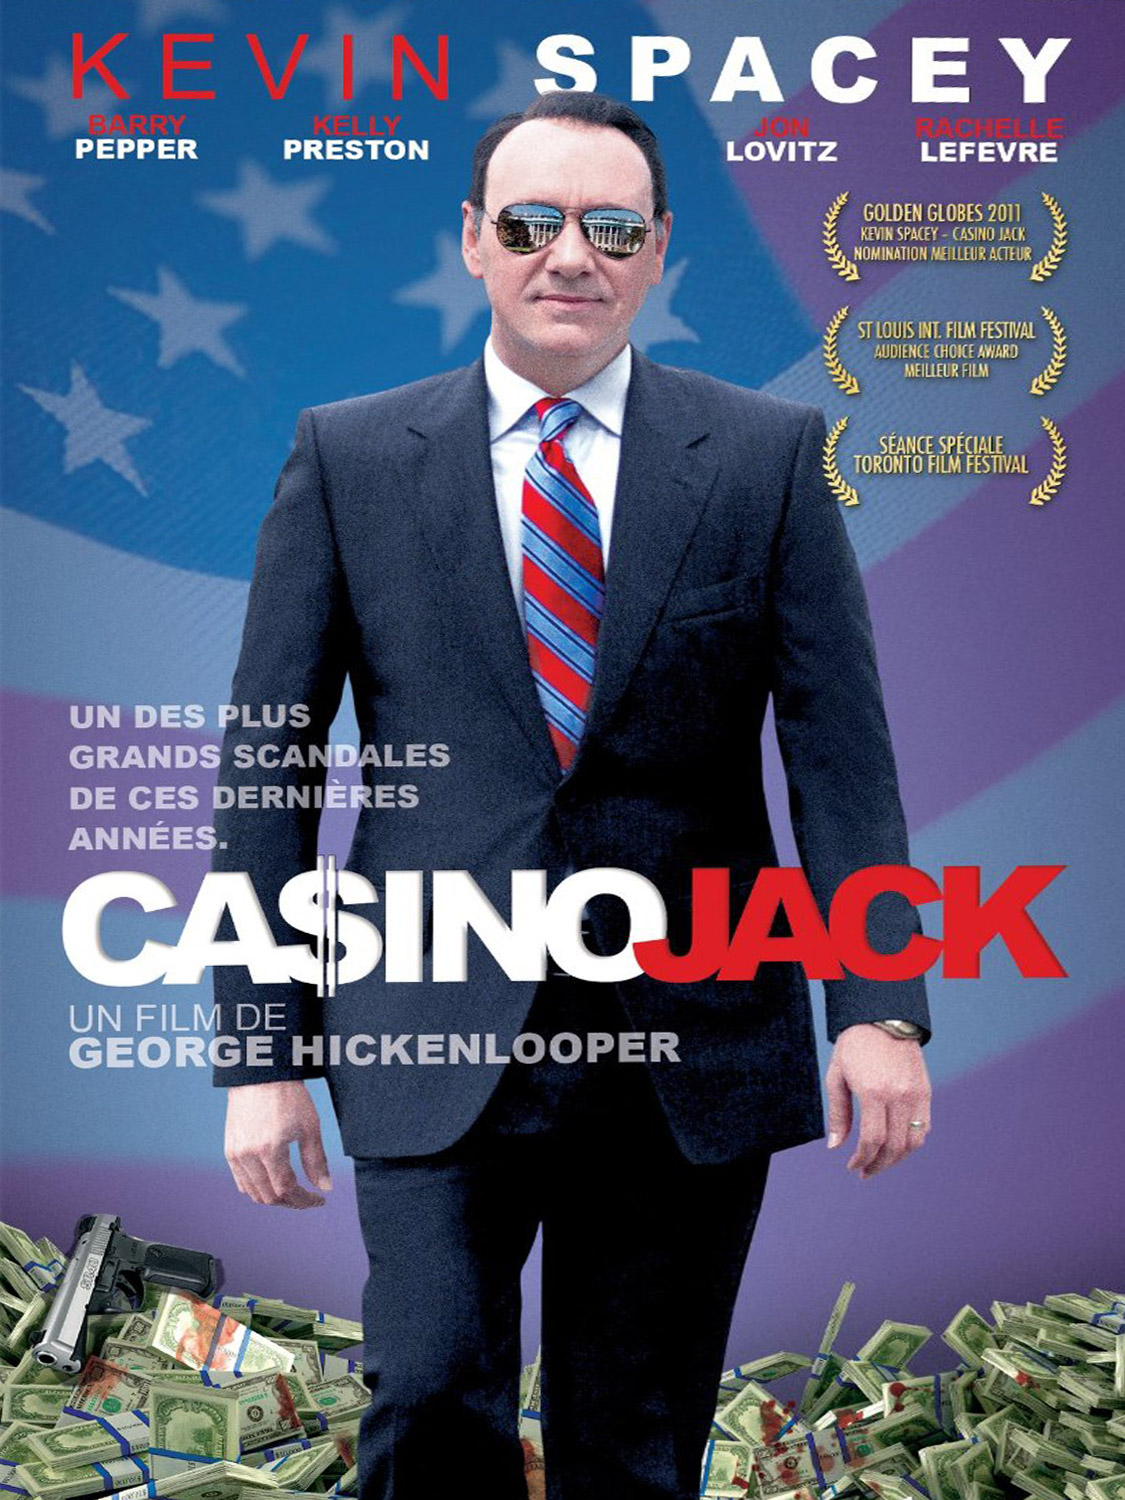 is casino jack a true story